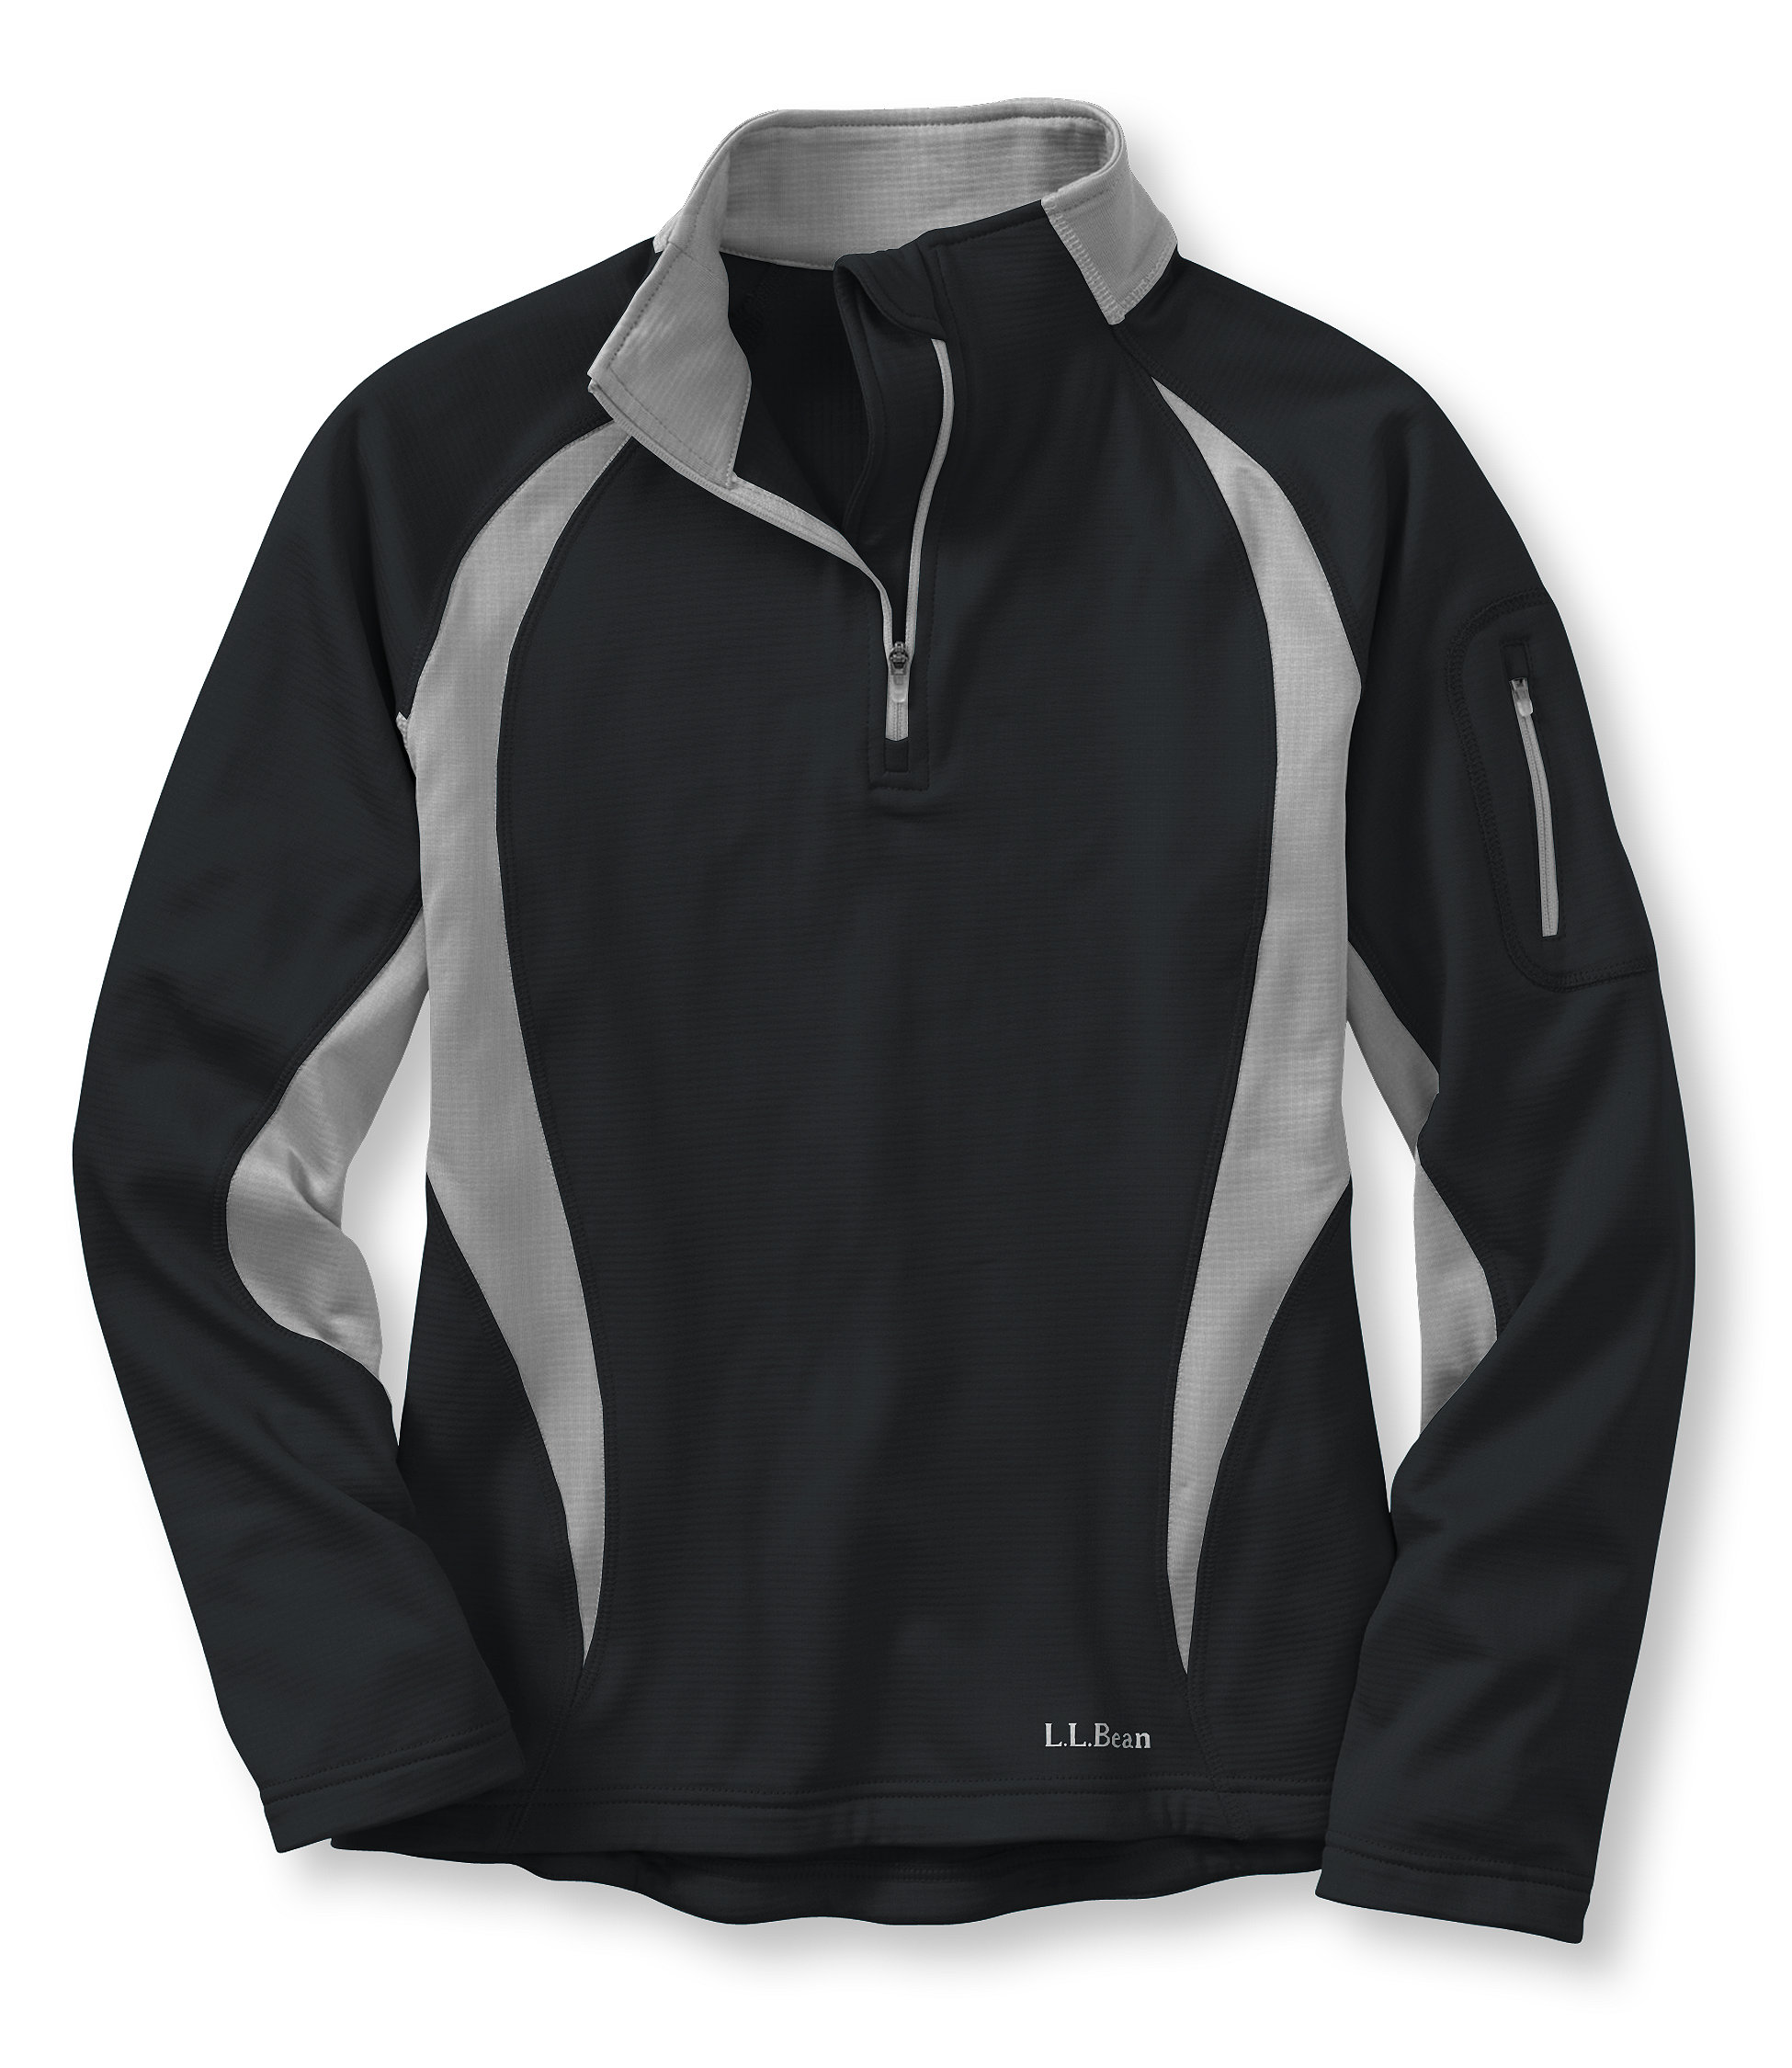 L.L.Bean Multisport Stretch Fleece Pullover